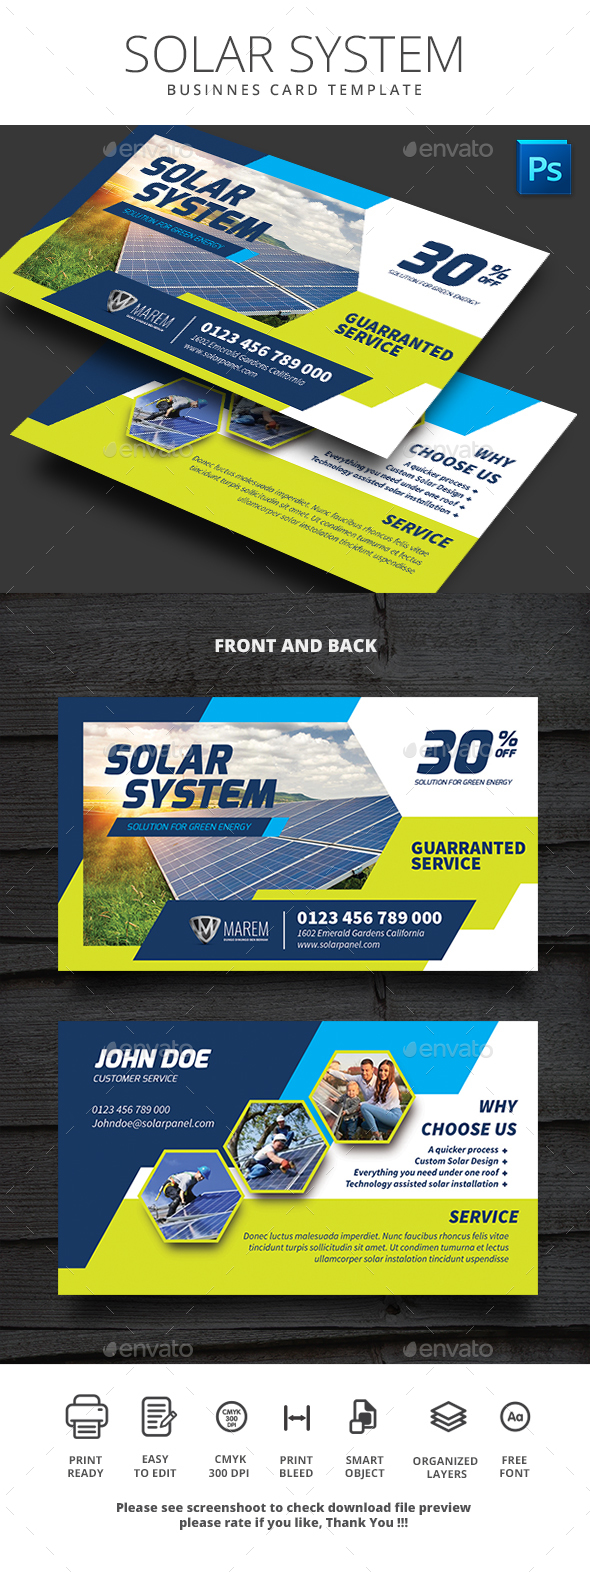 Electric Advert Stationery And Design Templates